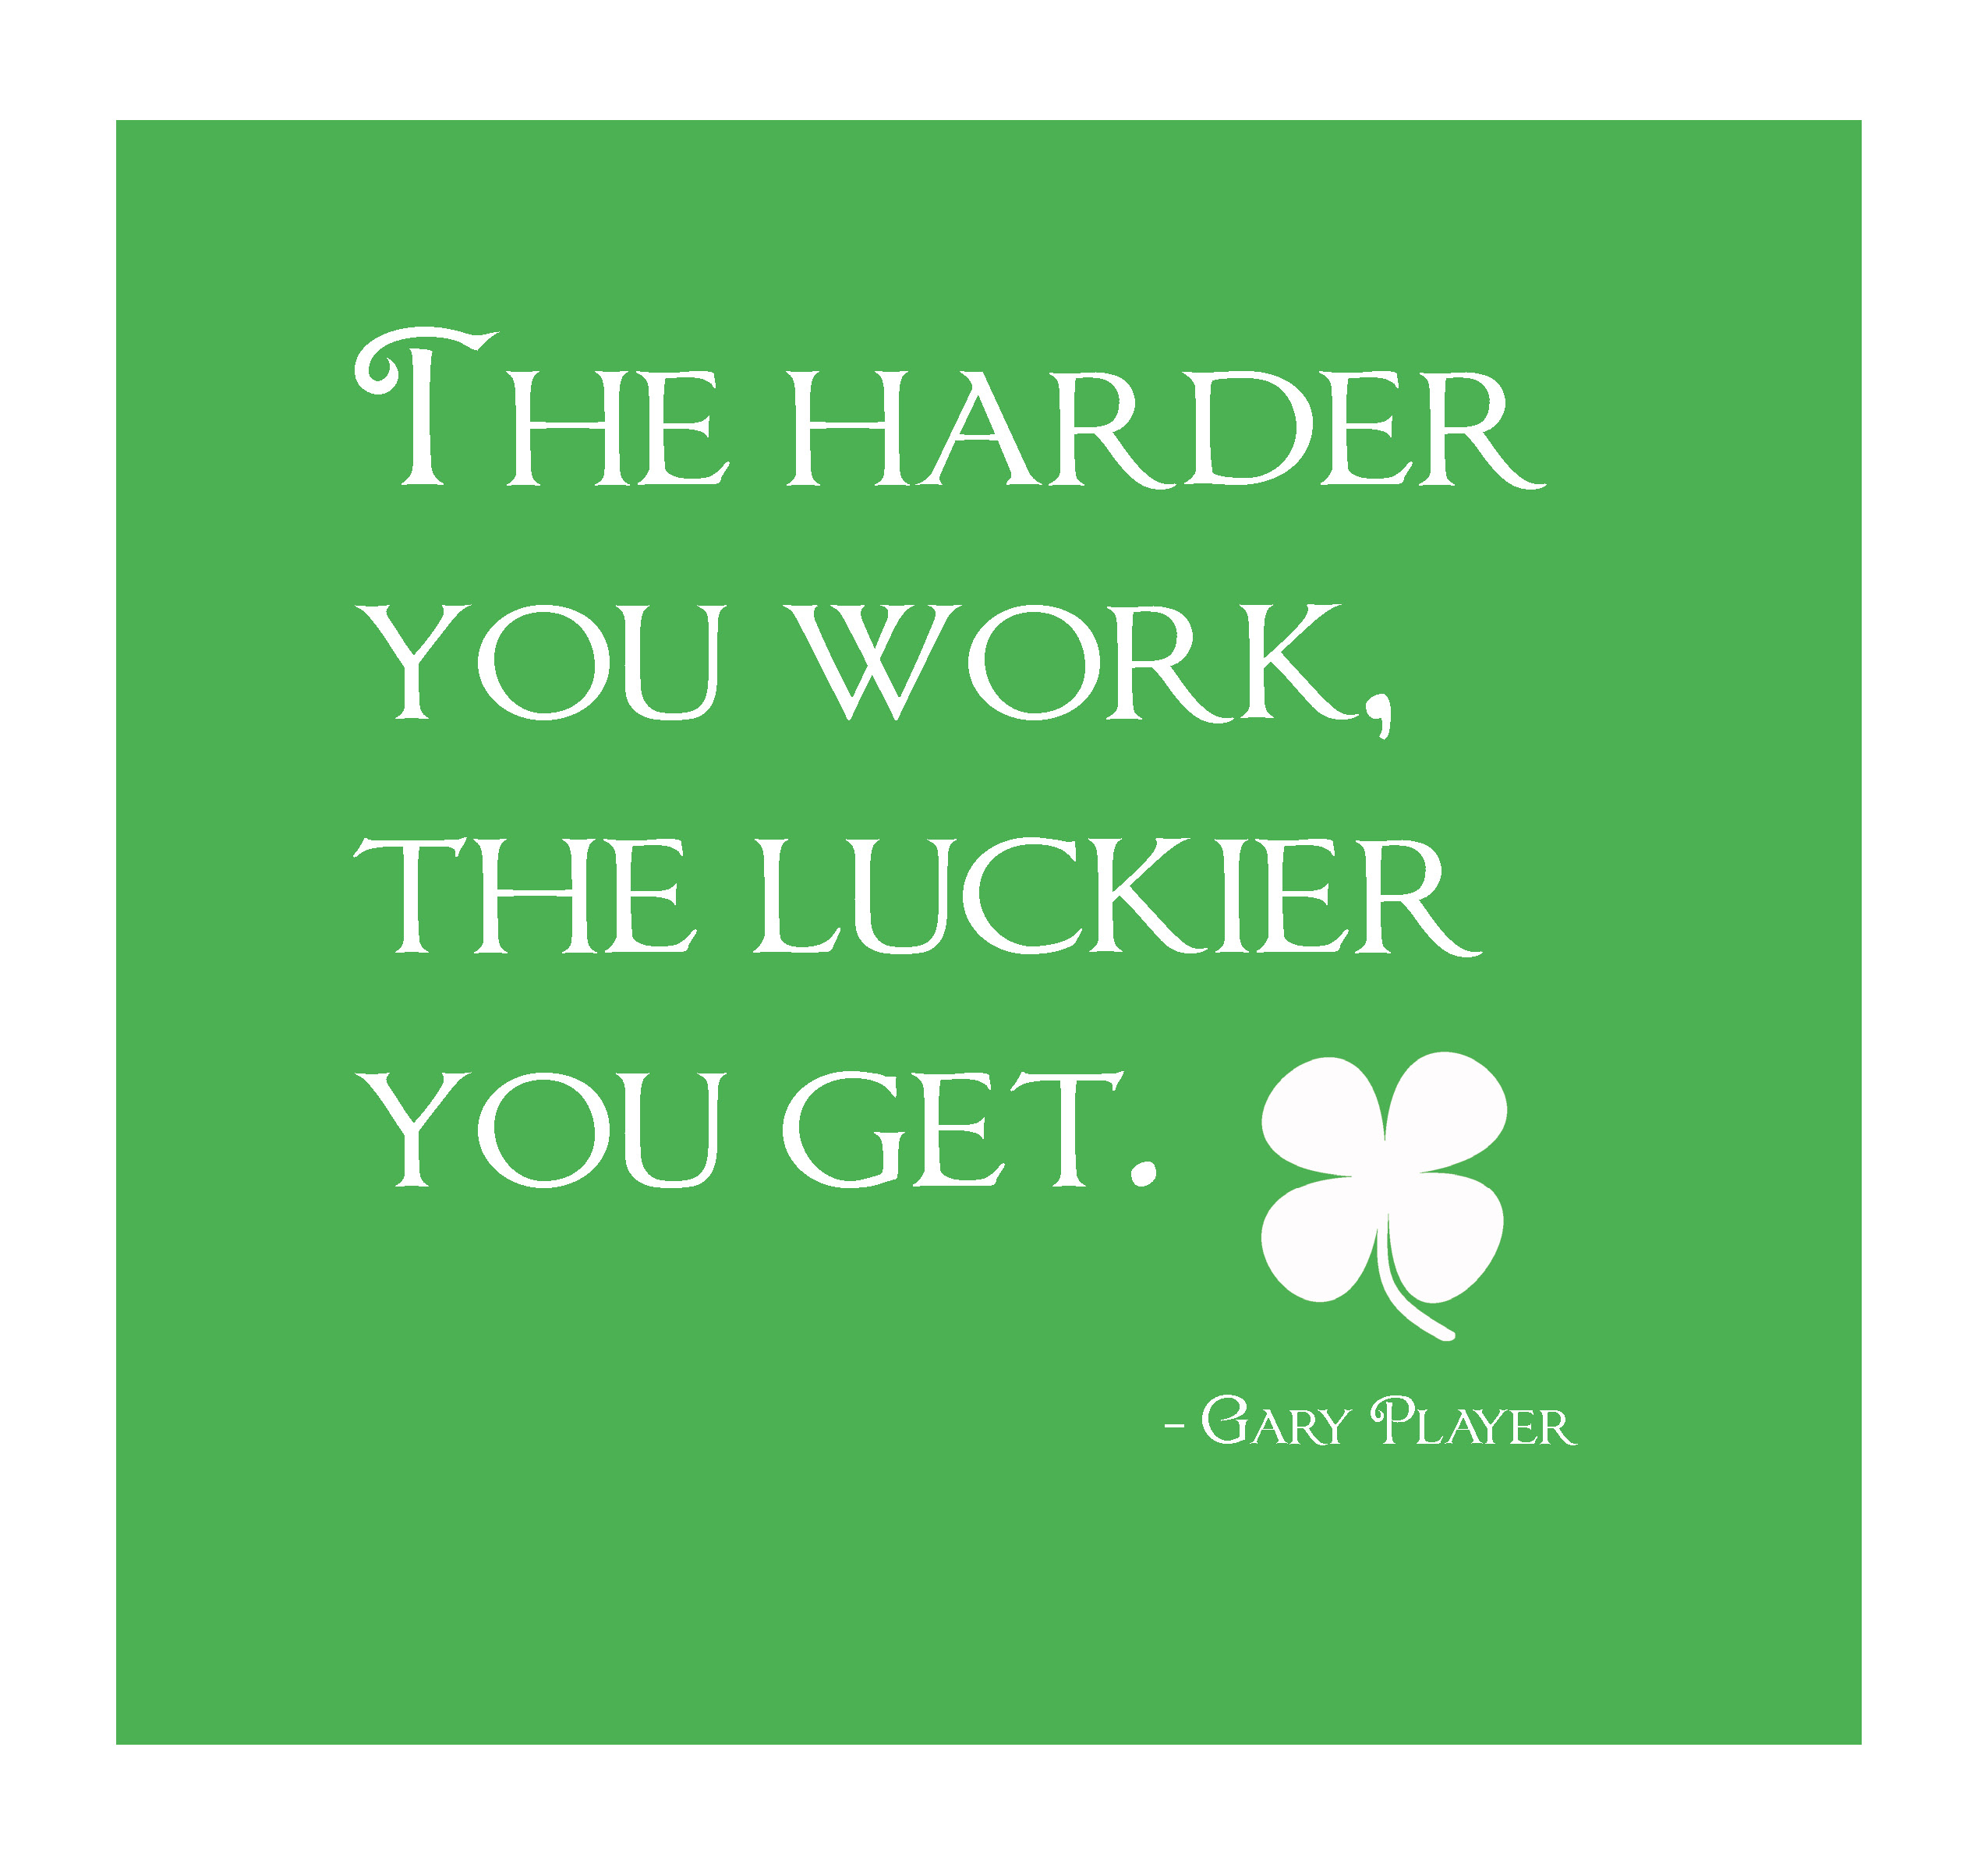 Working quote #7